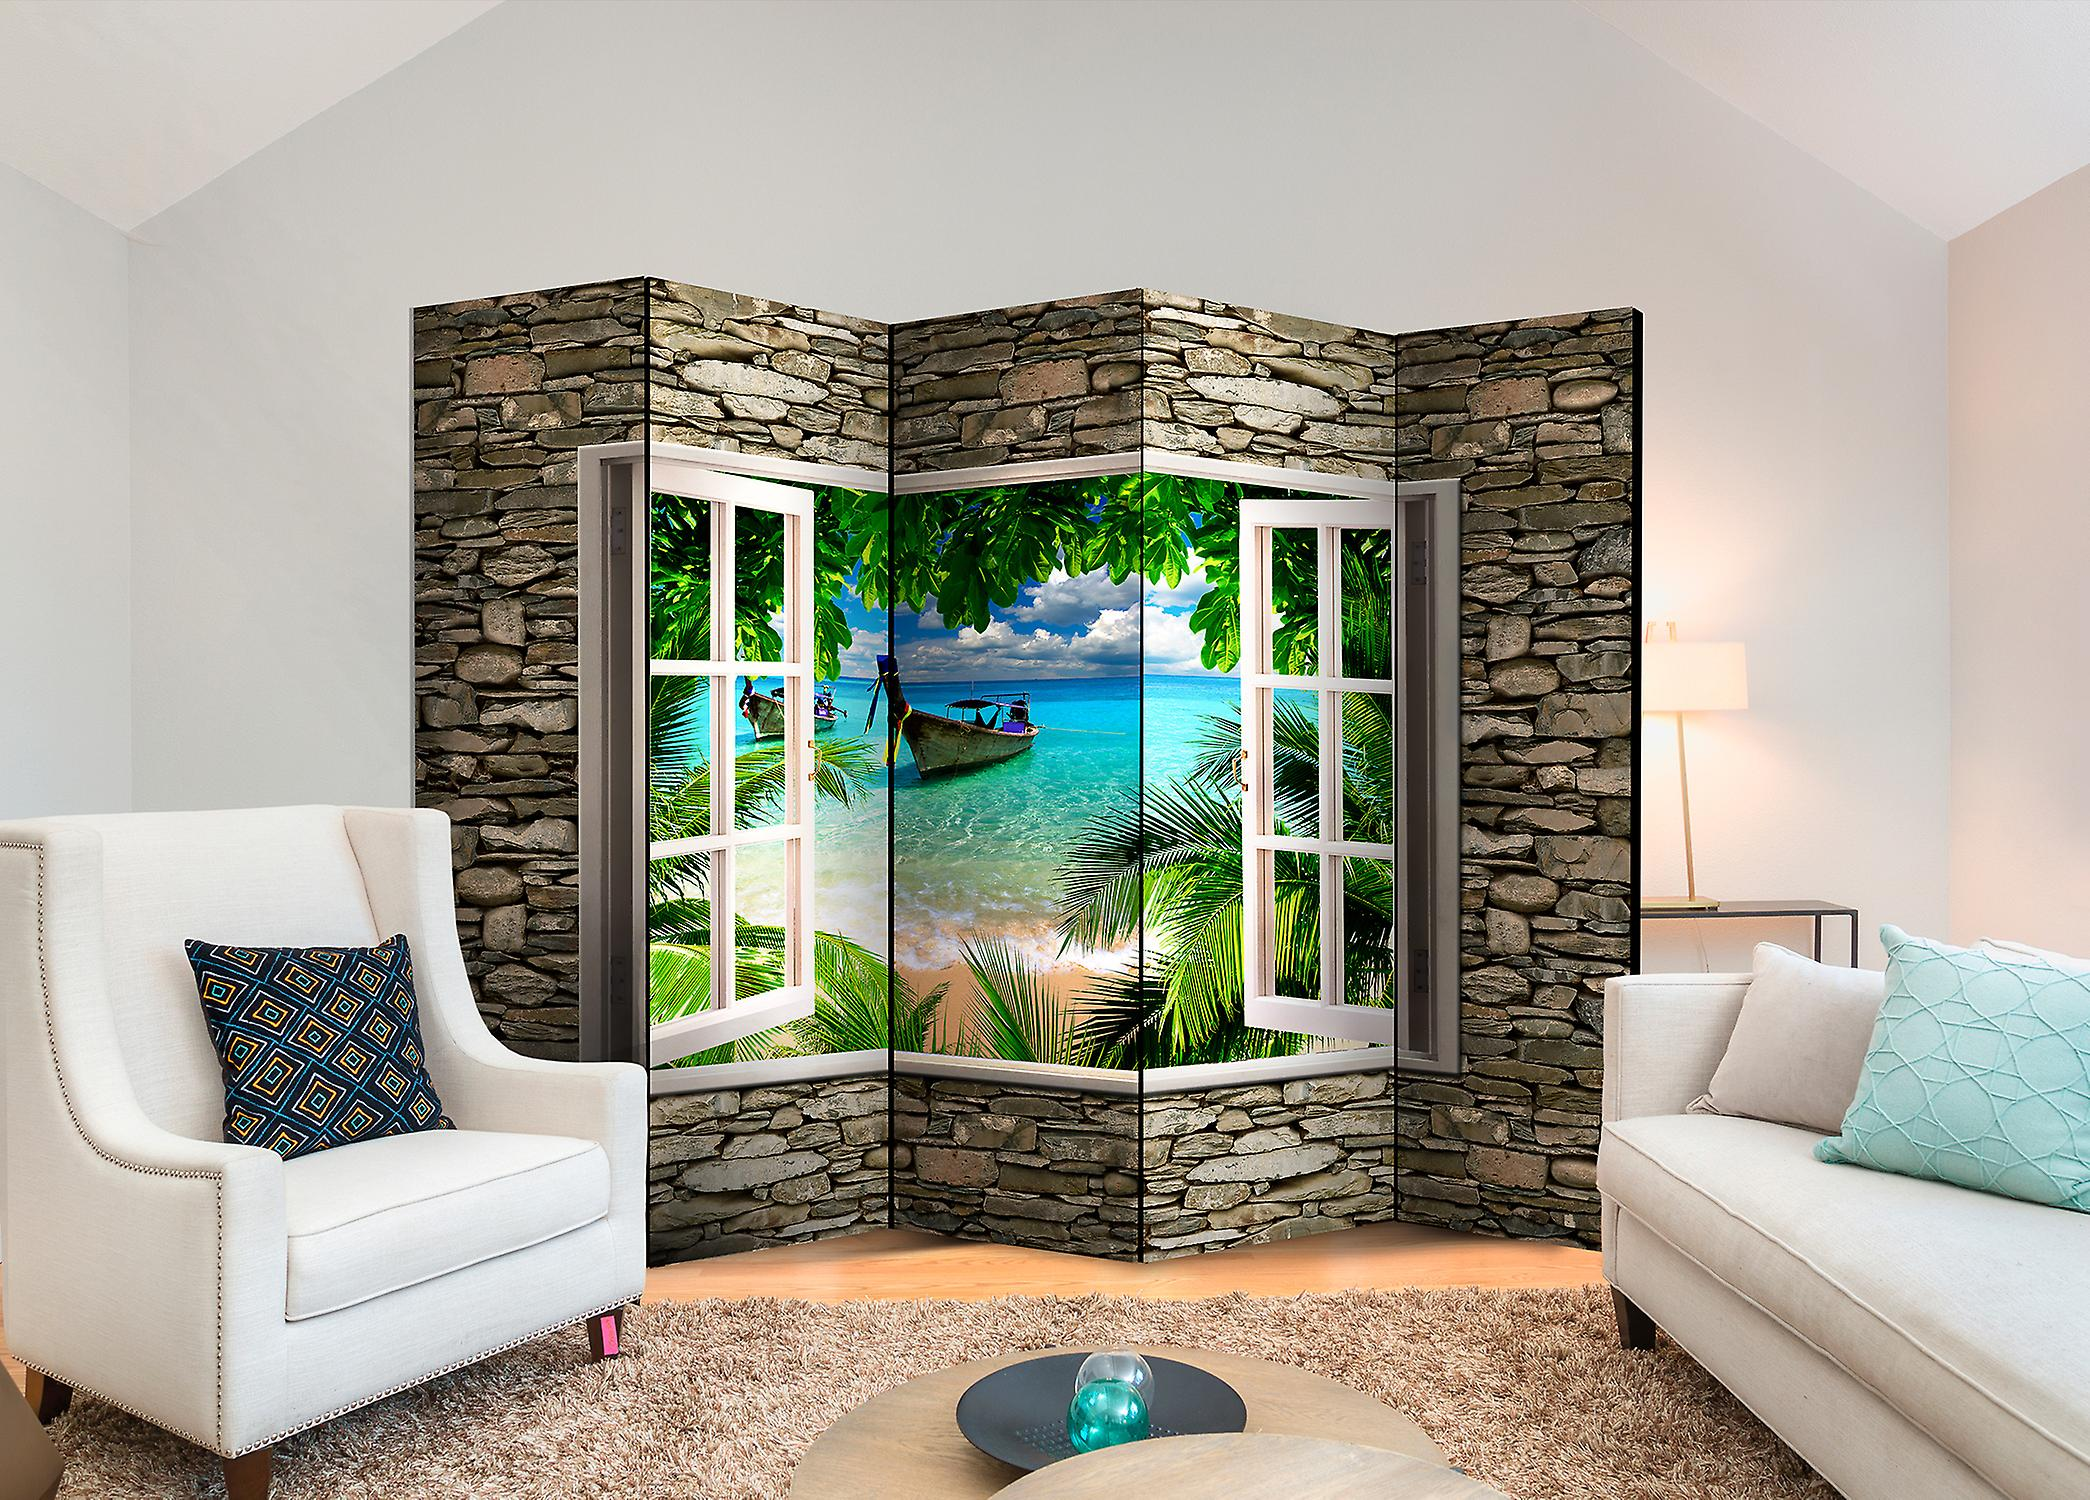 Dividers Iiroom DividerTropical Beach DividerTropical Beach Beach Iiroom Room Iiroom Dividers Room DividerTropical Room eBodCx